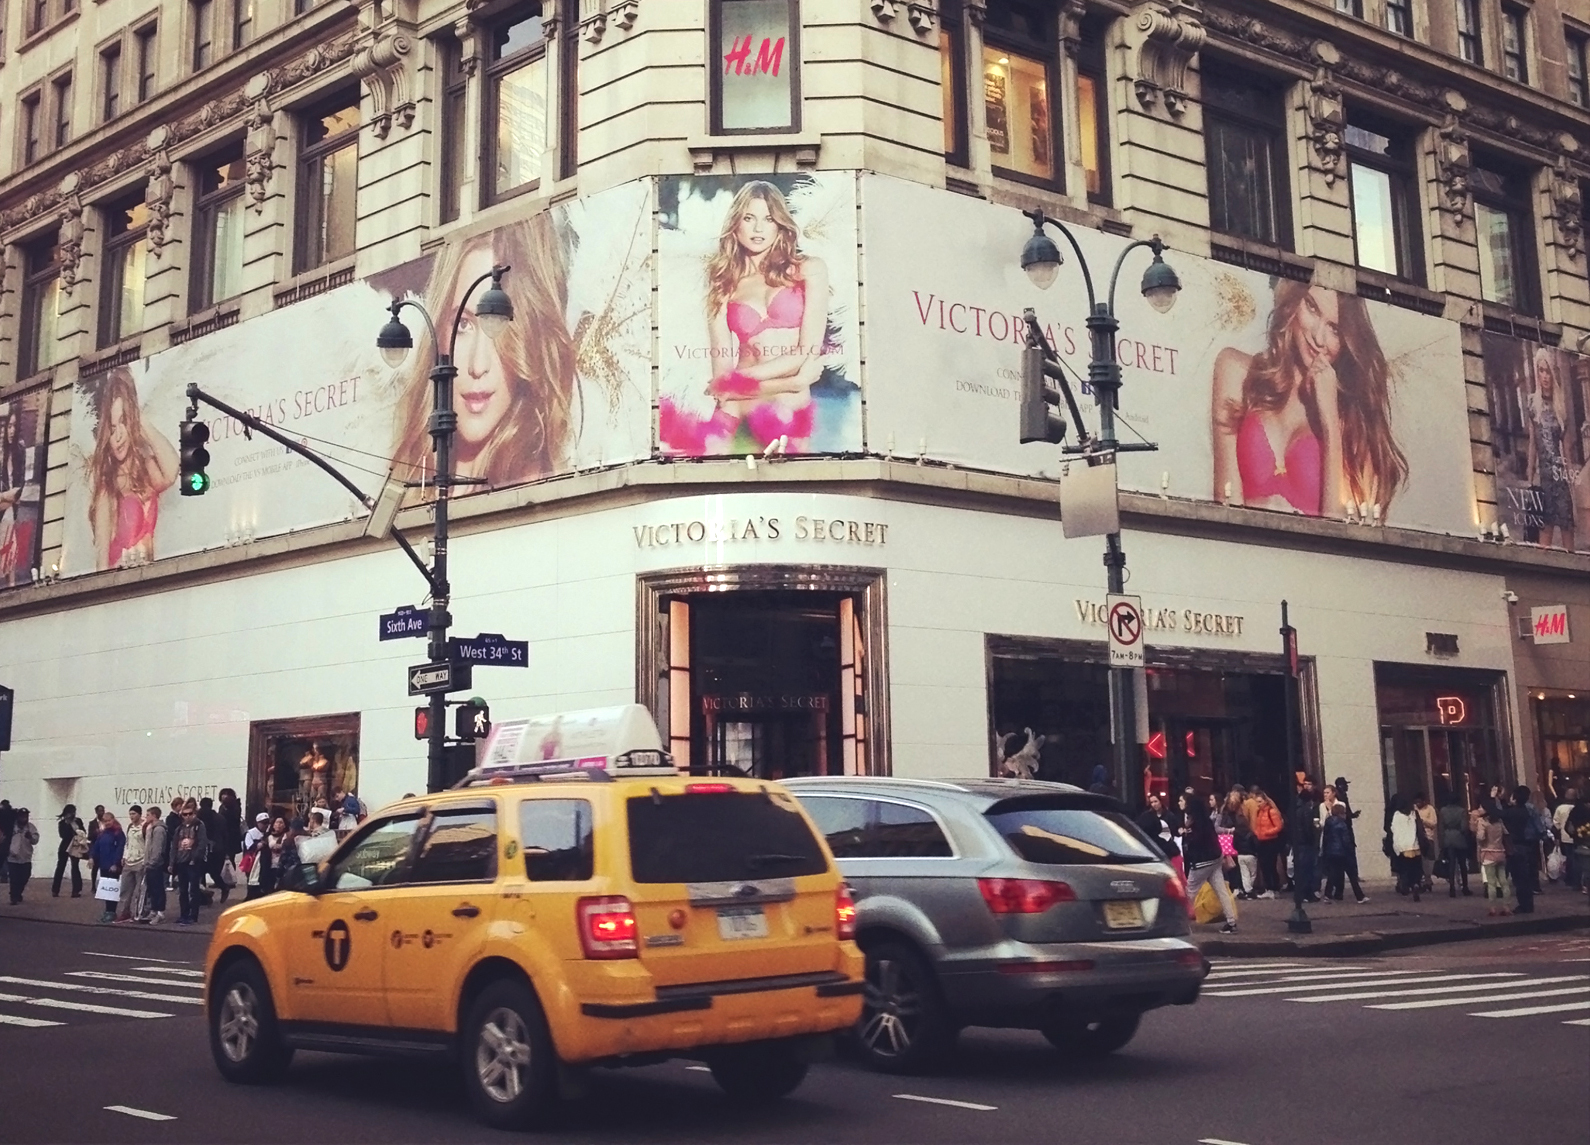 New York, New York, USA - April 13, 2013: Entrance to Victoria's Secret store located in Midtown